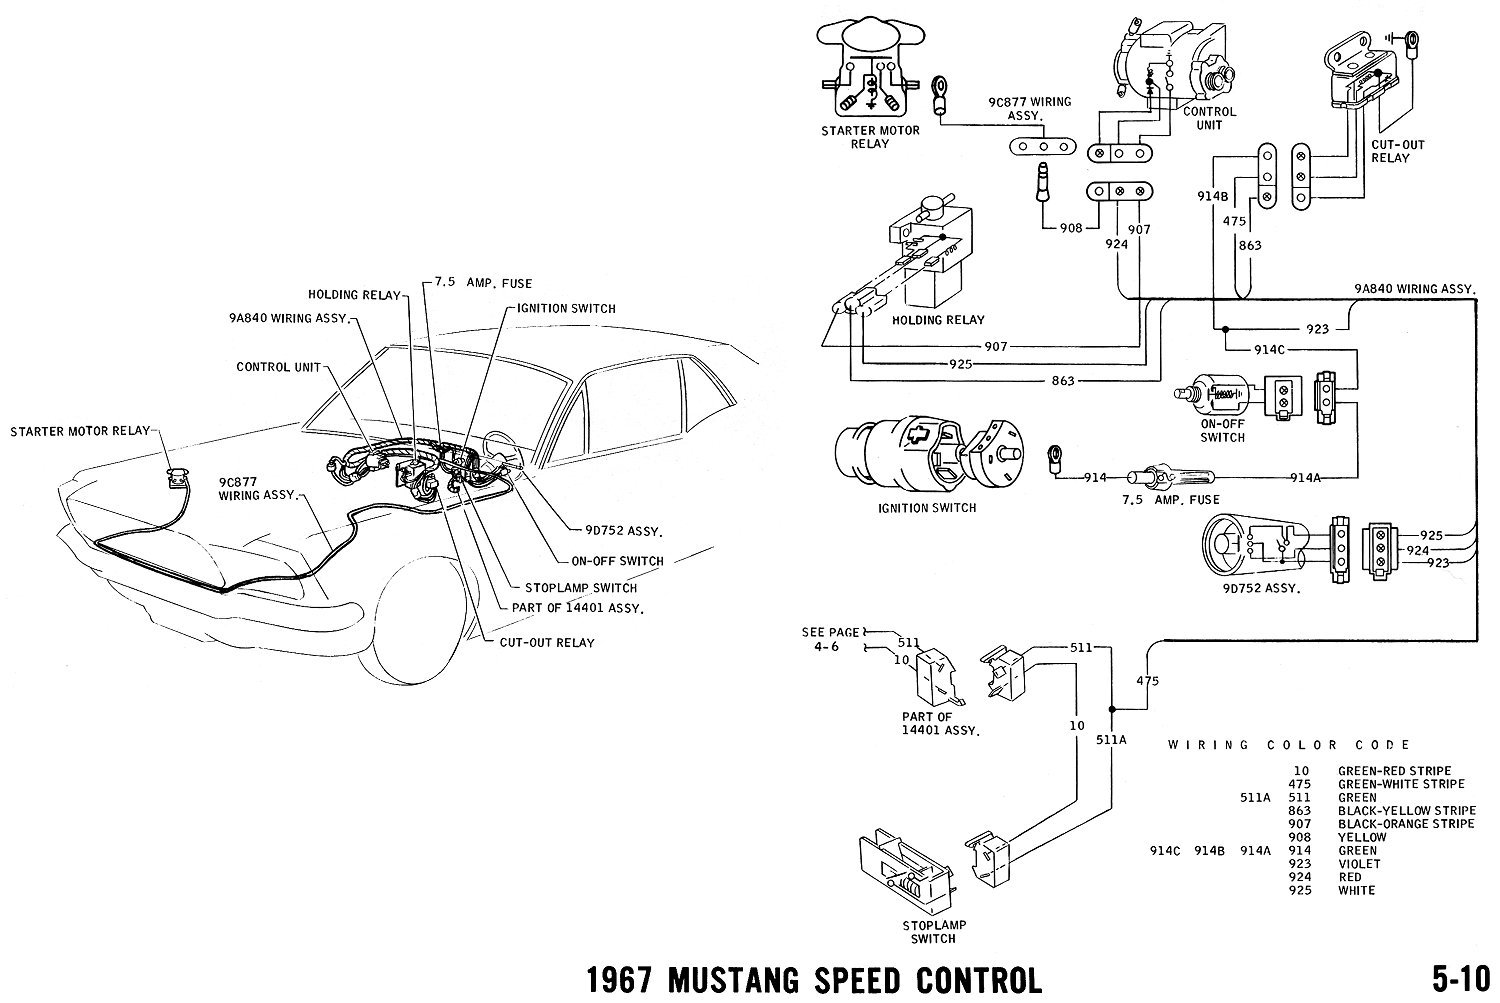 1967 mustang wiring and vacuum diagrams average joe restoration 1966 mustang wiring diagram 1967 mustang speed control pictorial and schematic vacuum diagram